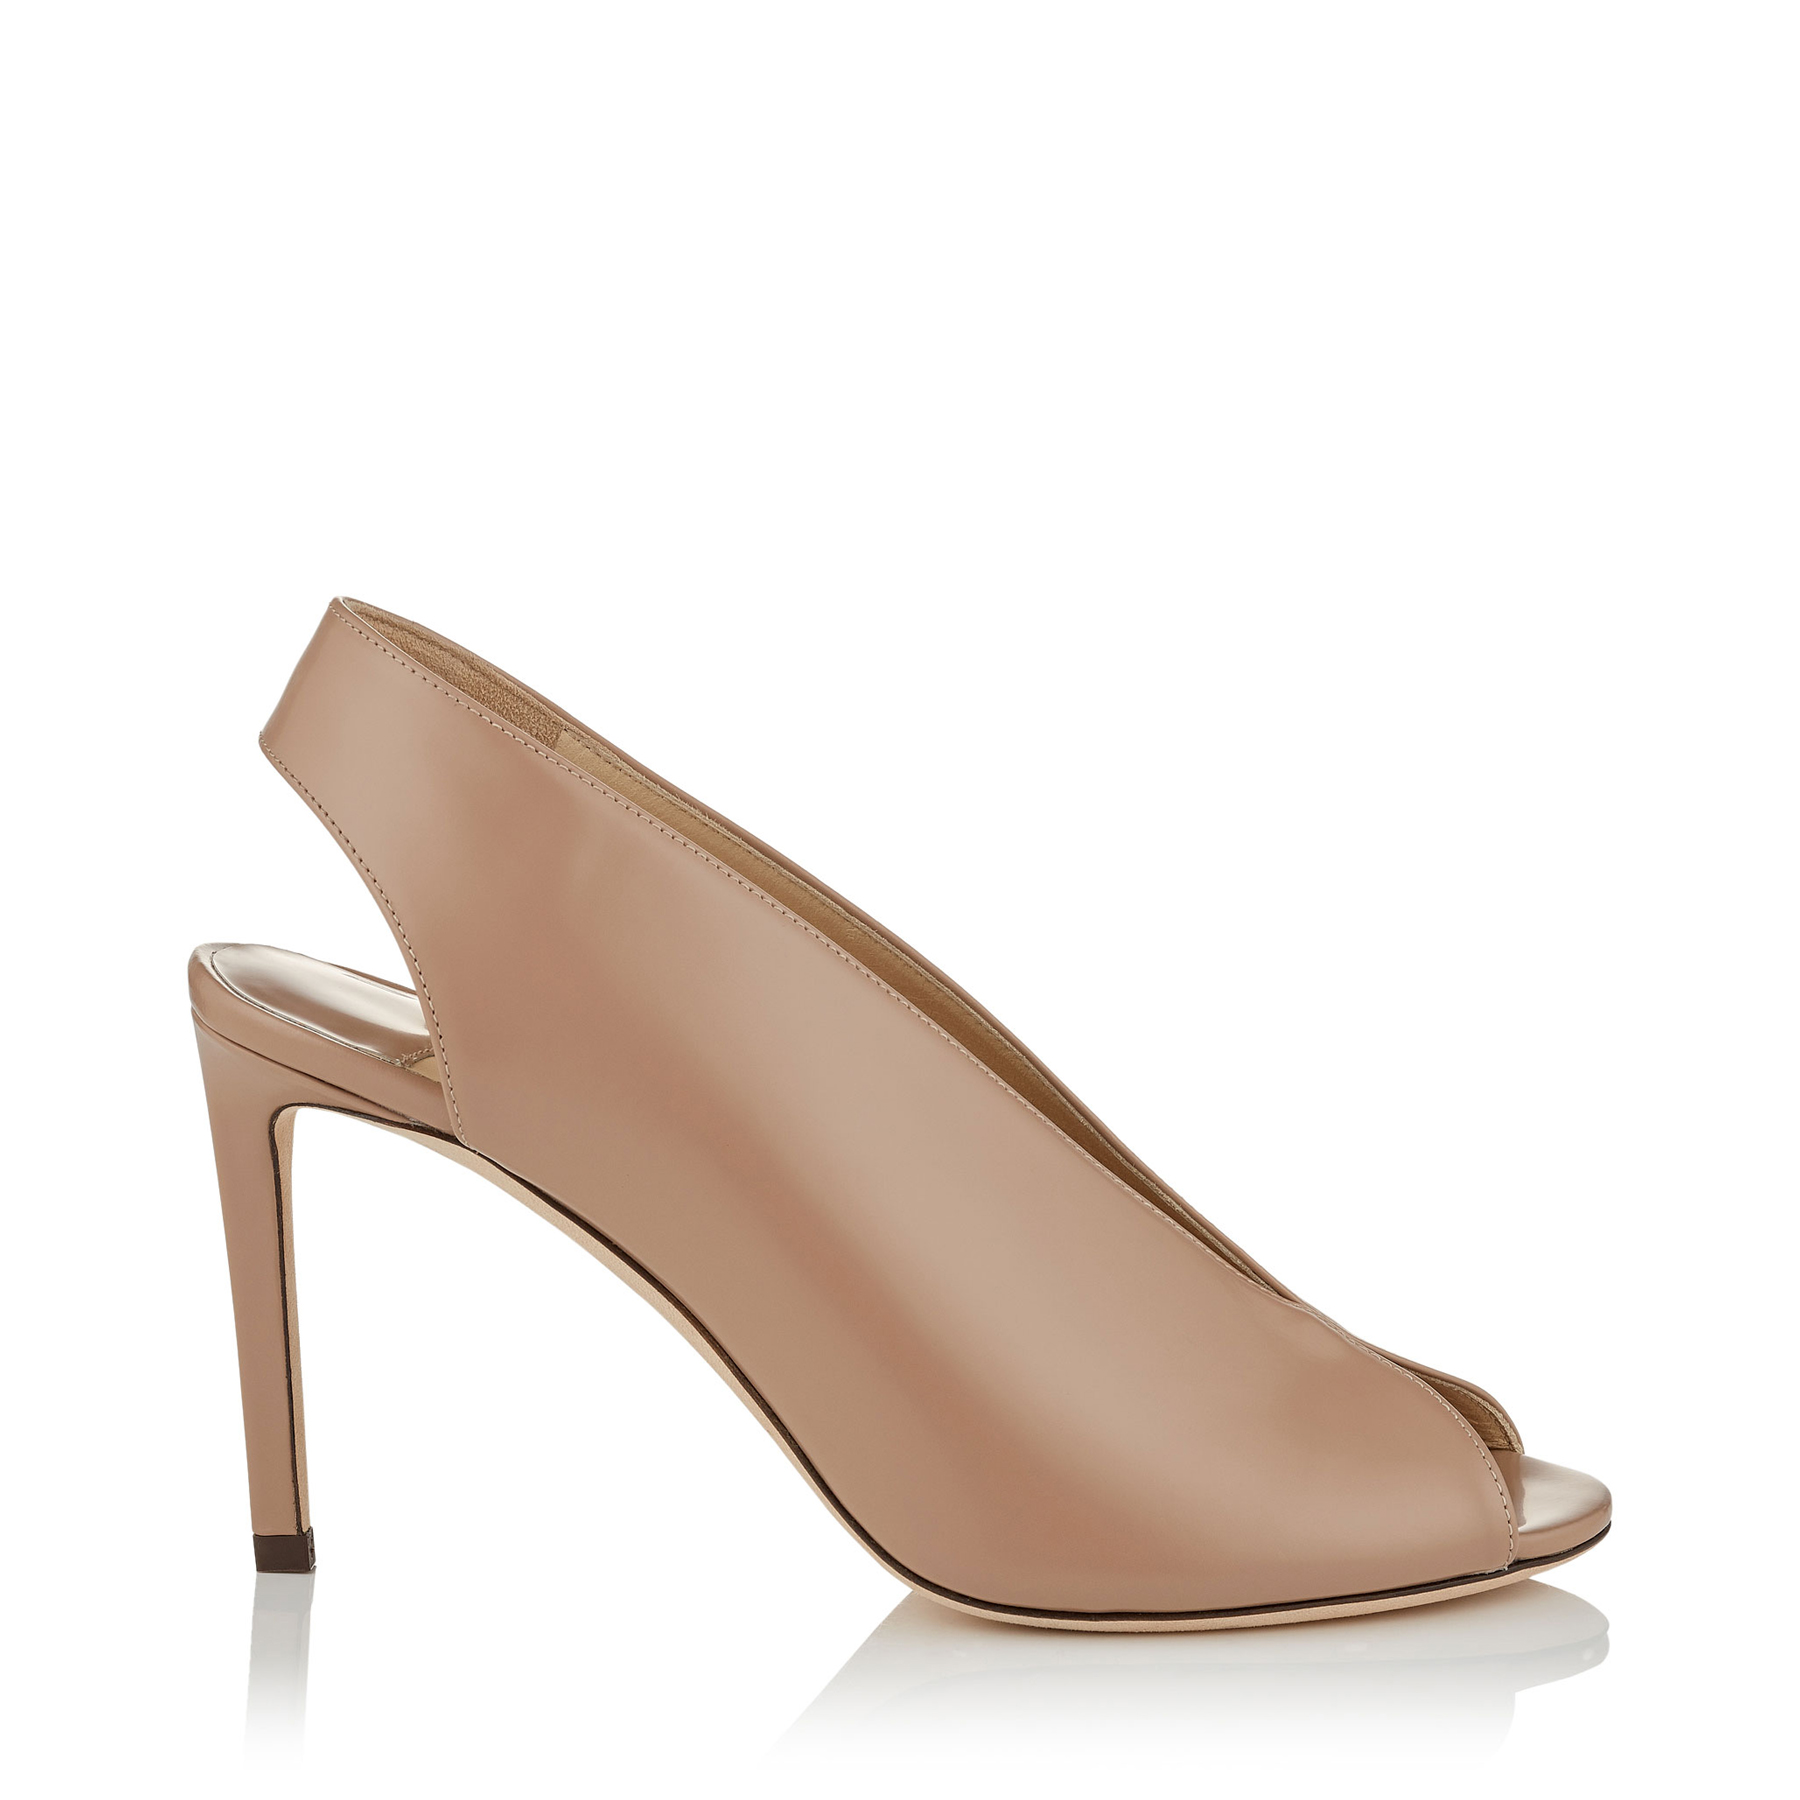 SHAR 85 Ballet Pink Liquid Leather Sandal Booties by Jimmy Choo